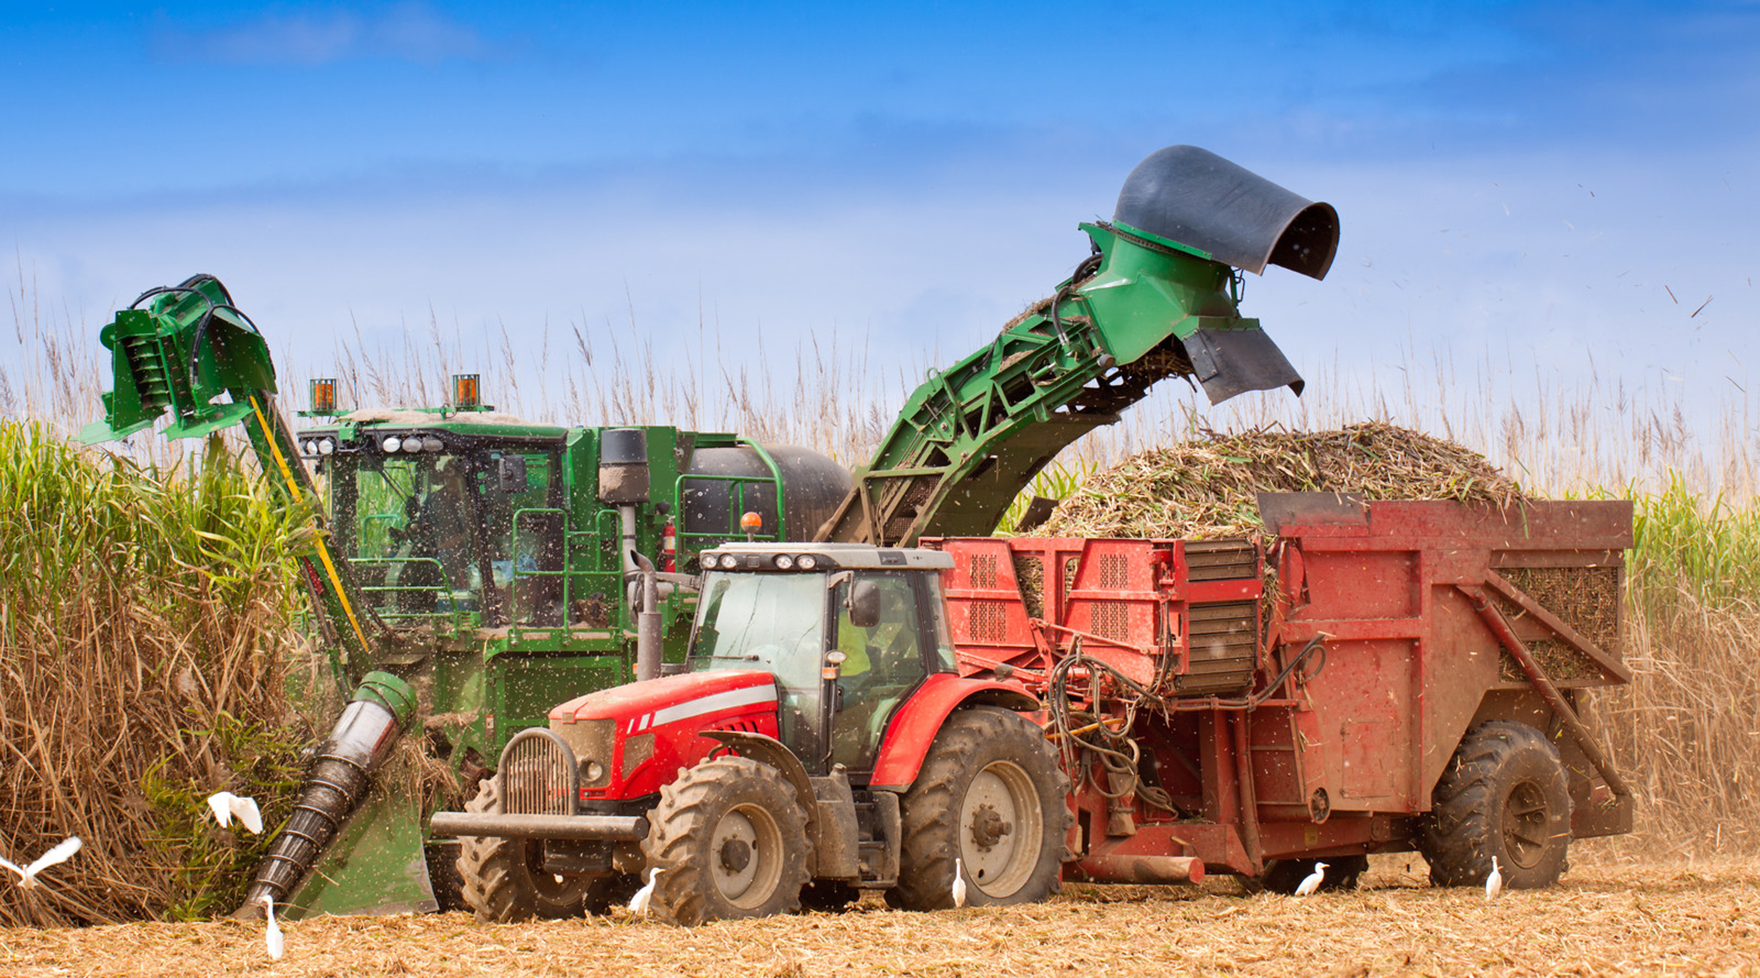 JOHN DEERE and CAMECO sugar cane harvester and agricultural tractors. RAC Germany supplies genuine spare parts.